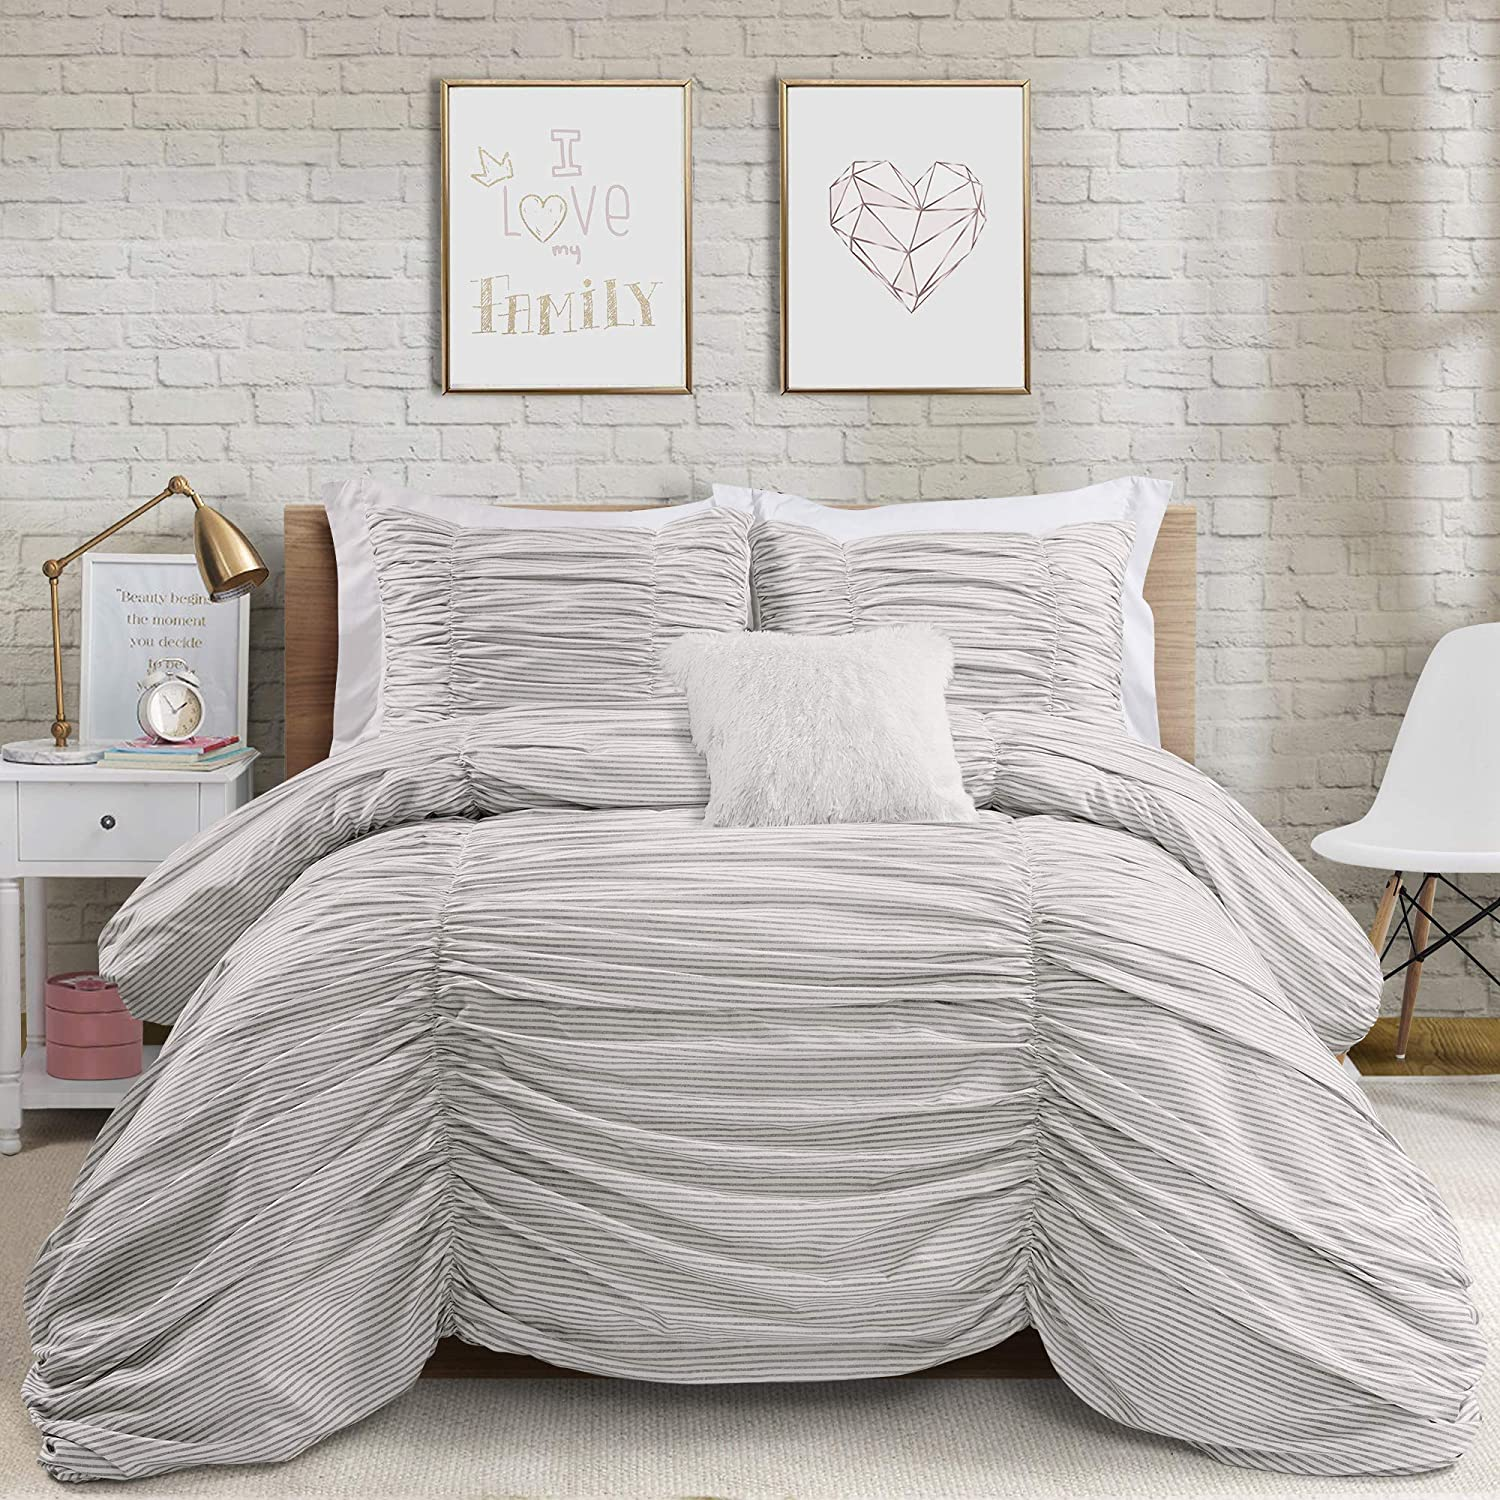 Lush Decor Gray Max 68% OFF Ruching Ticking Stripe Comforter F 3 Piece Limited time cheap sale Set